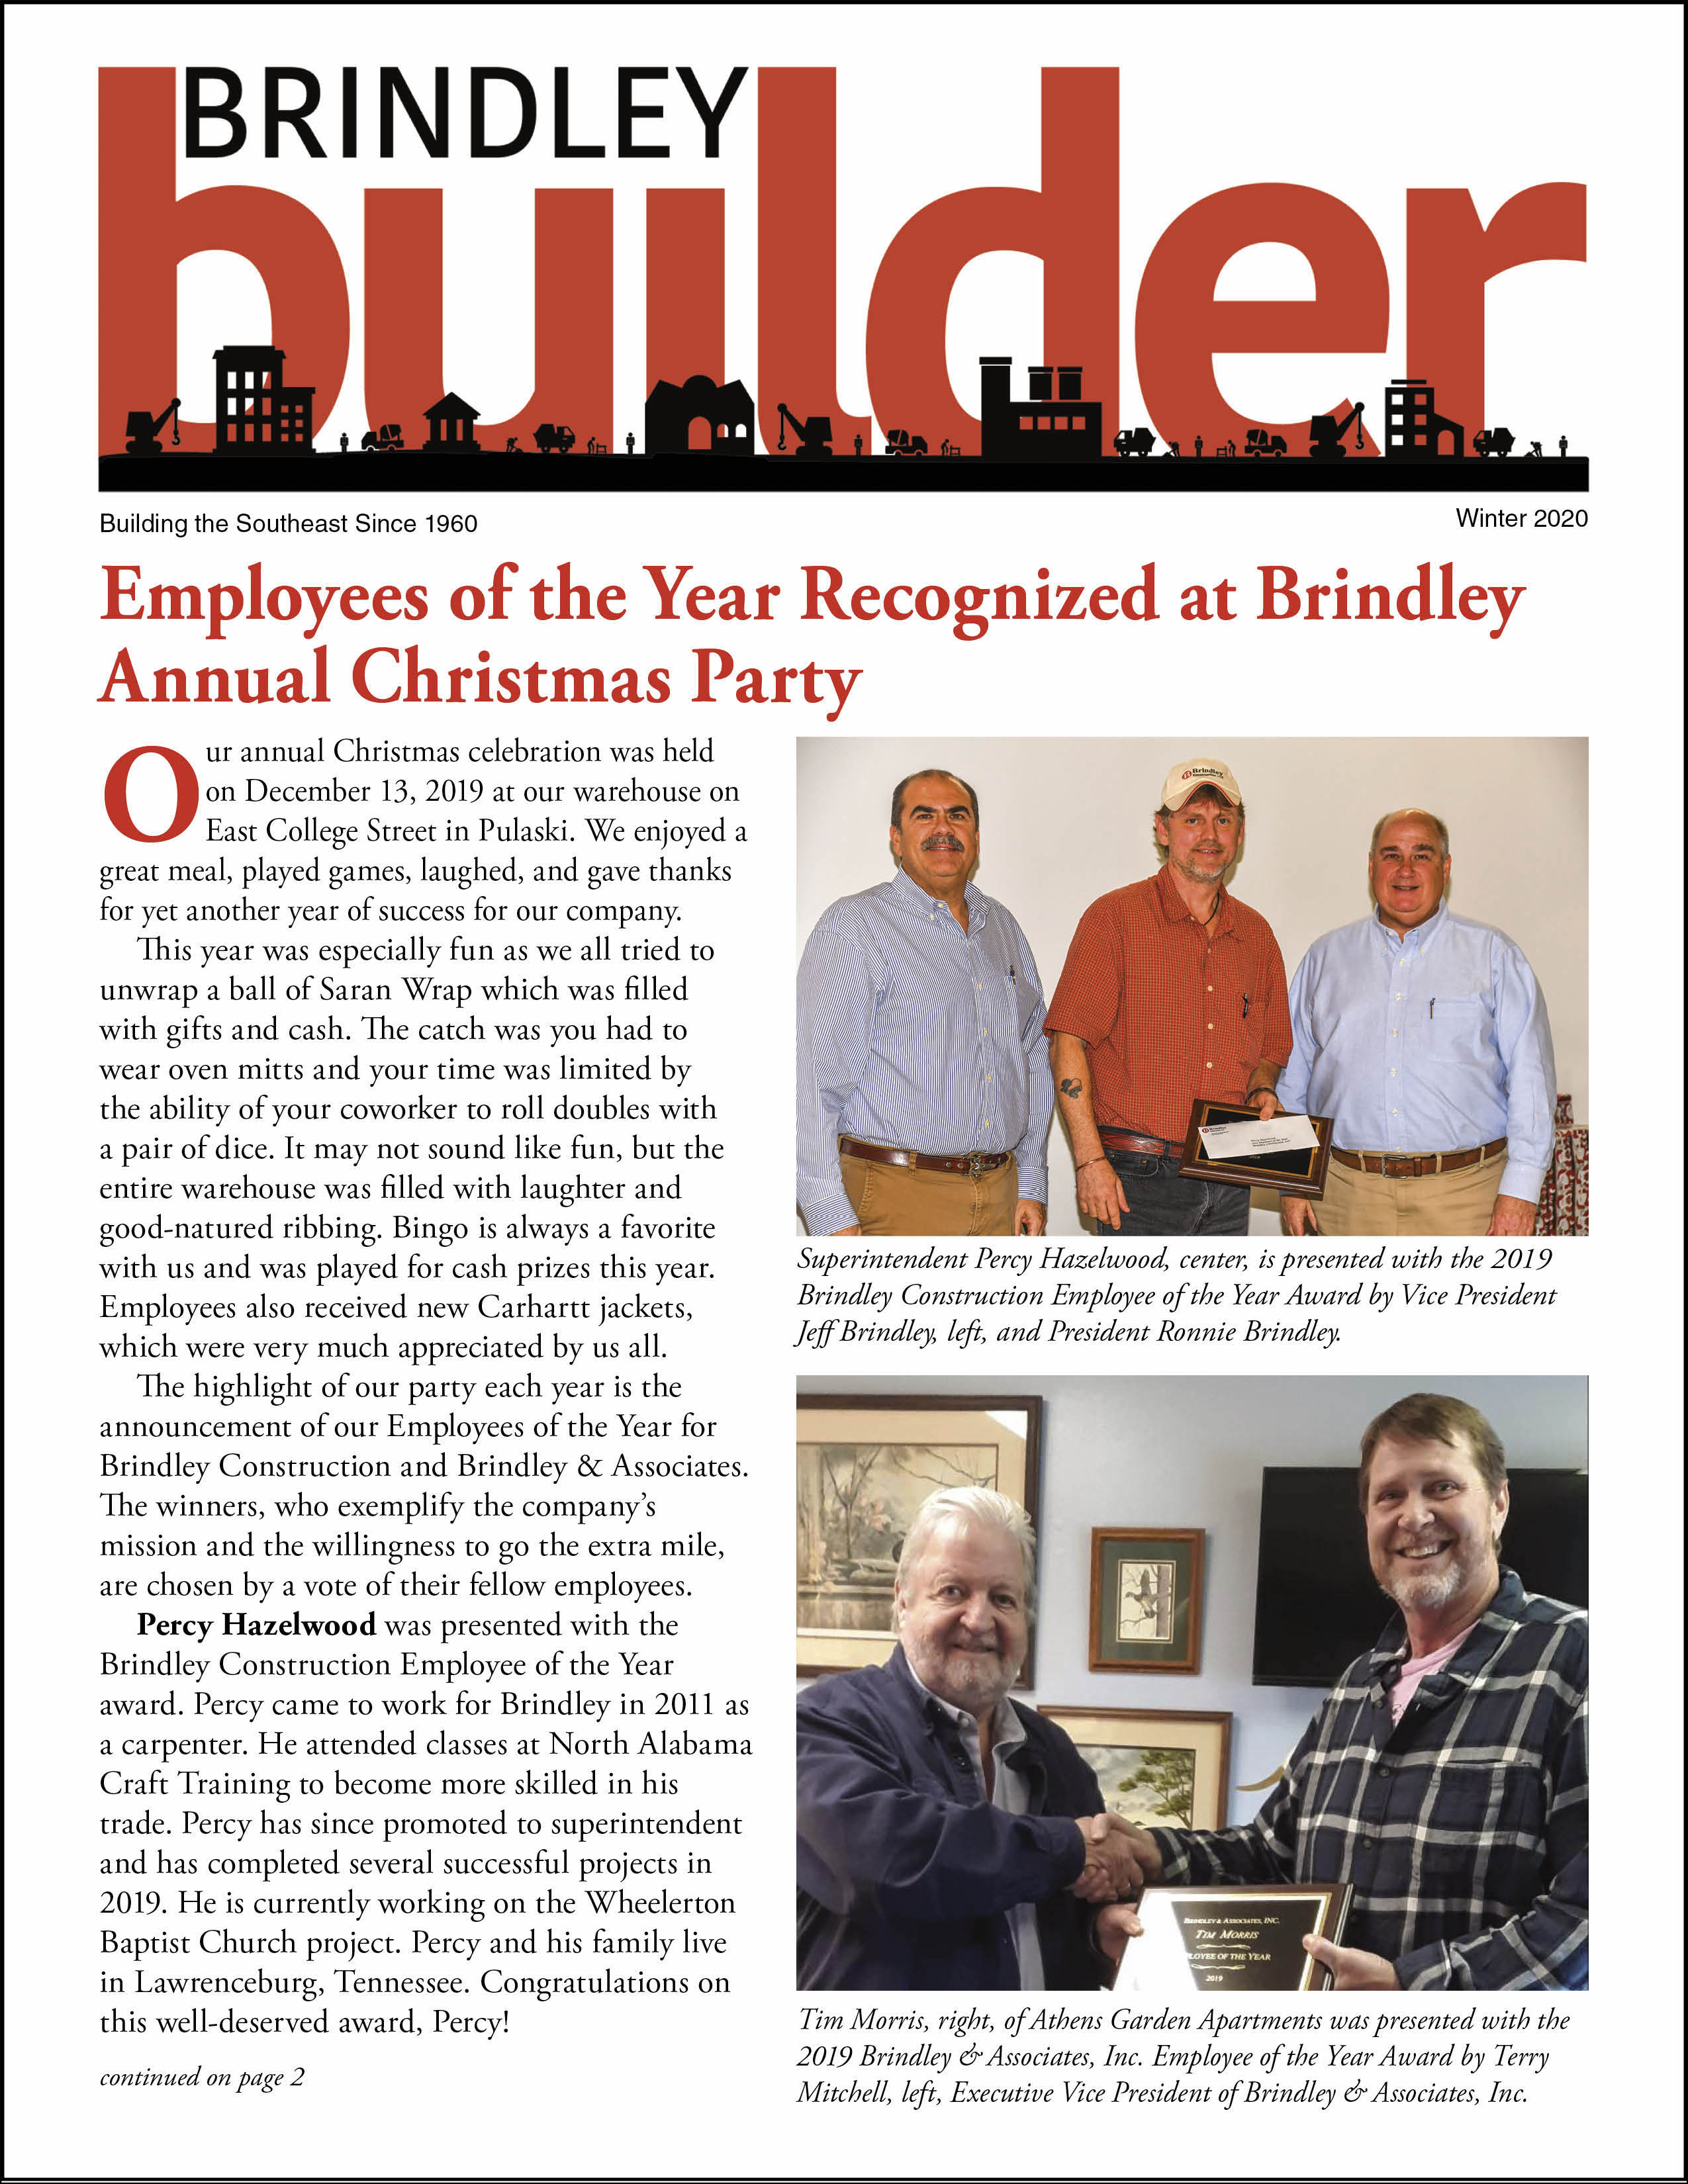 The Brindley Builder | Winter 2020 Issue | Brindley Construction